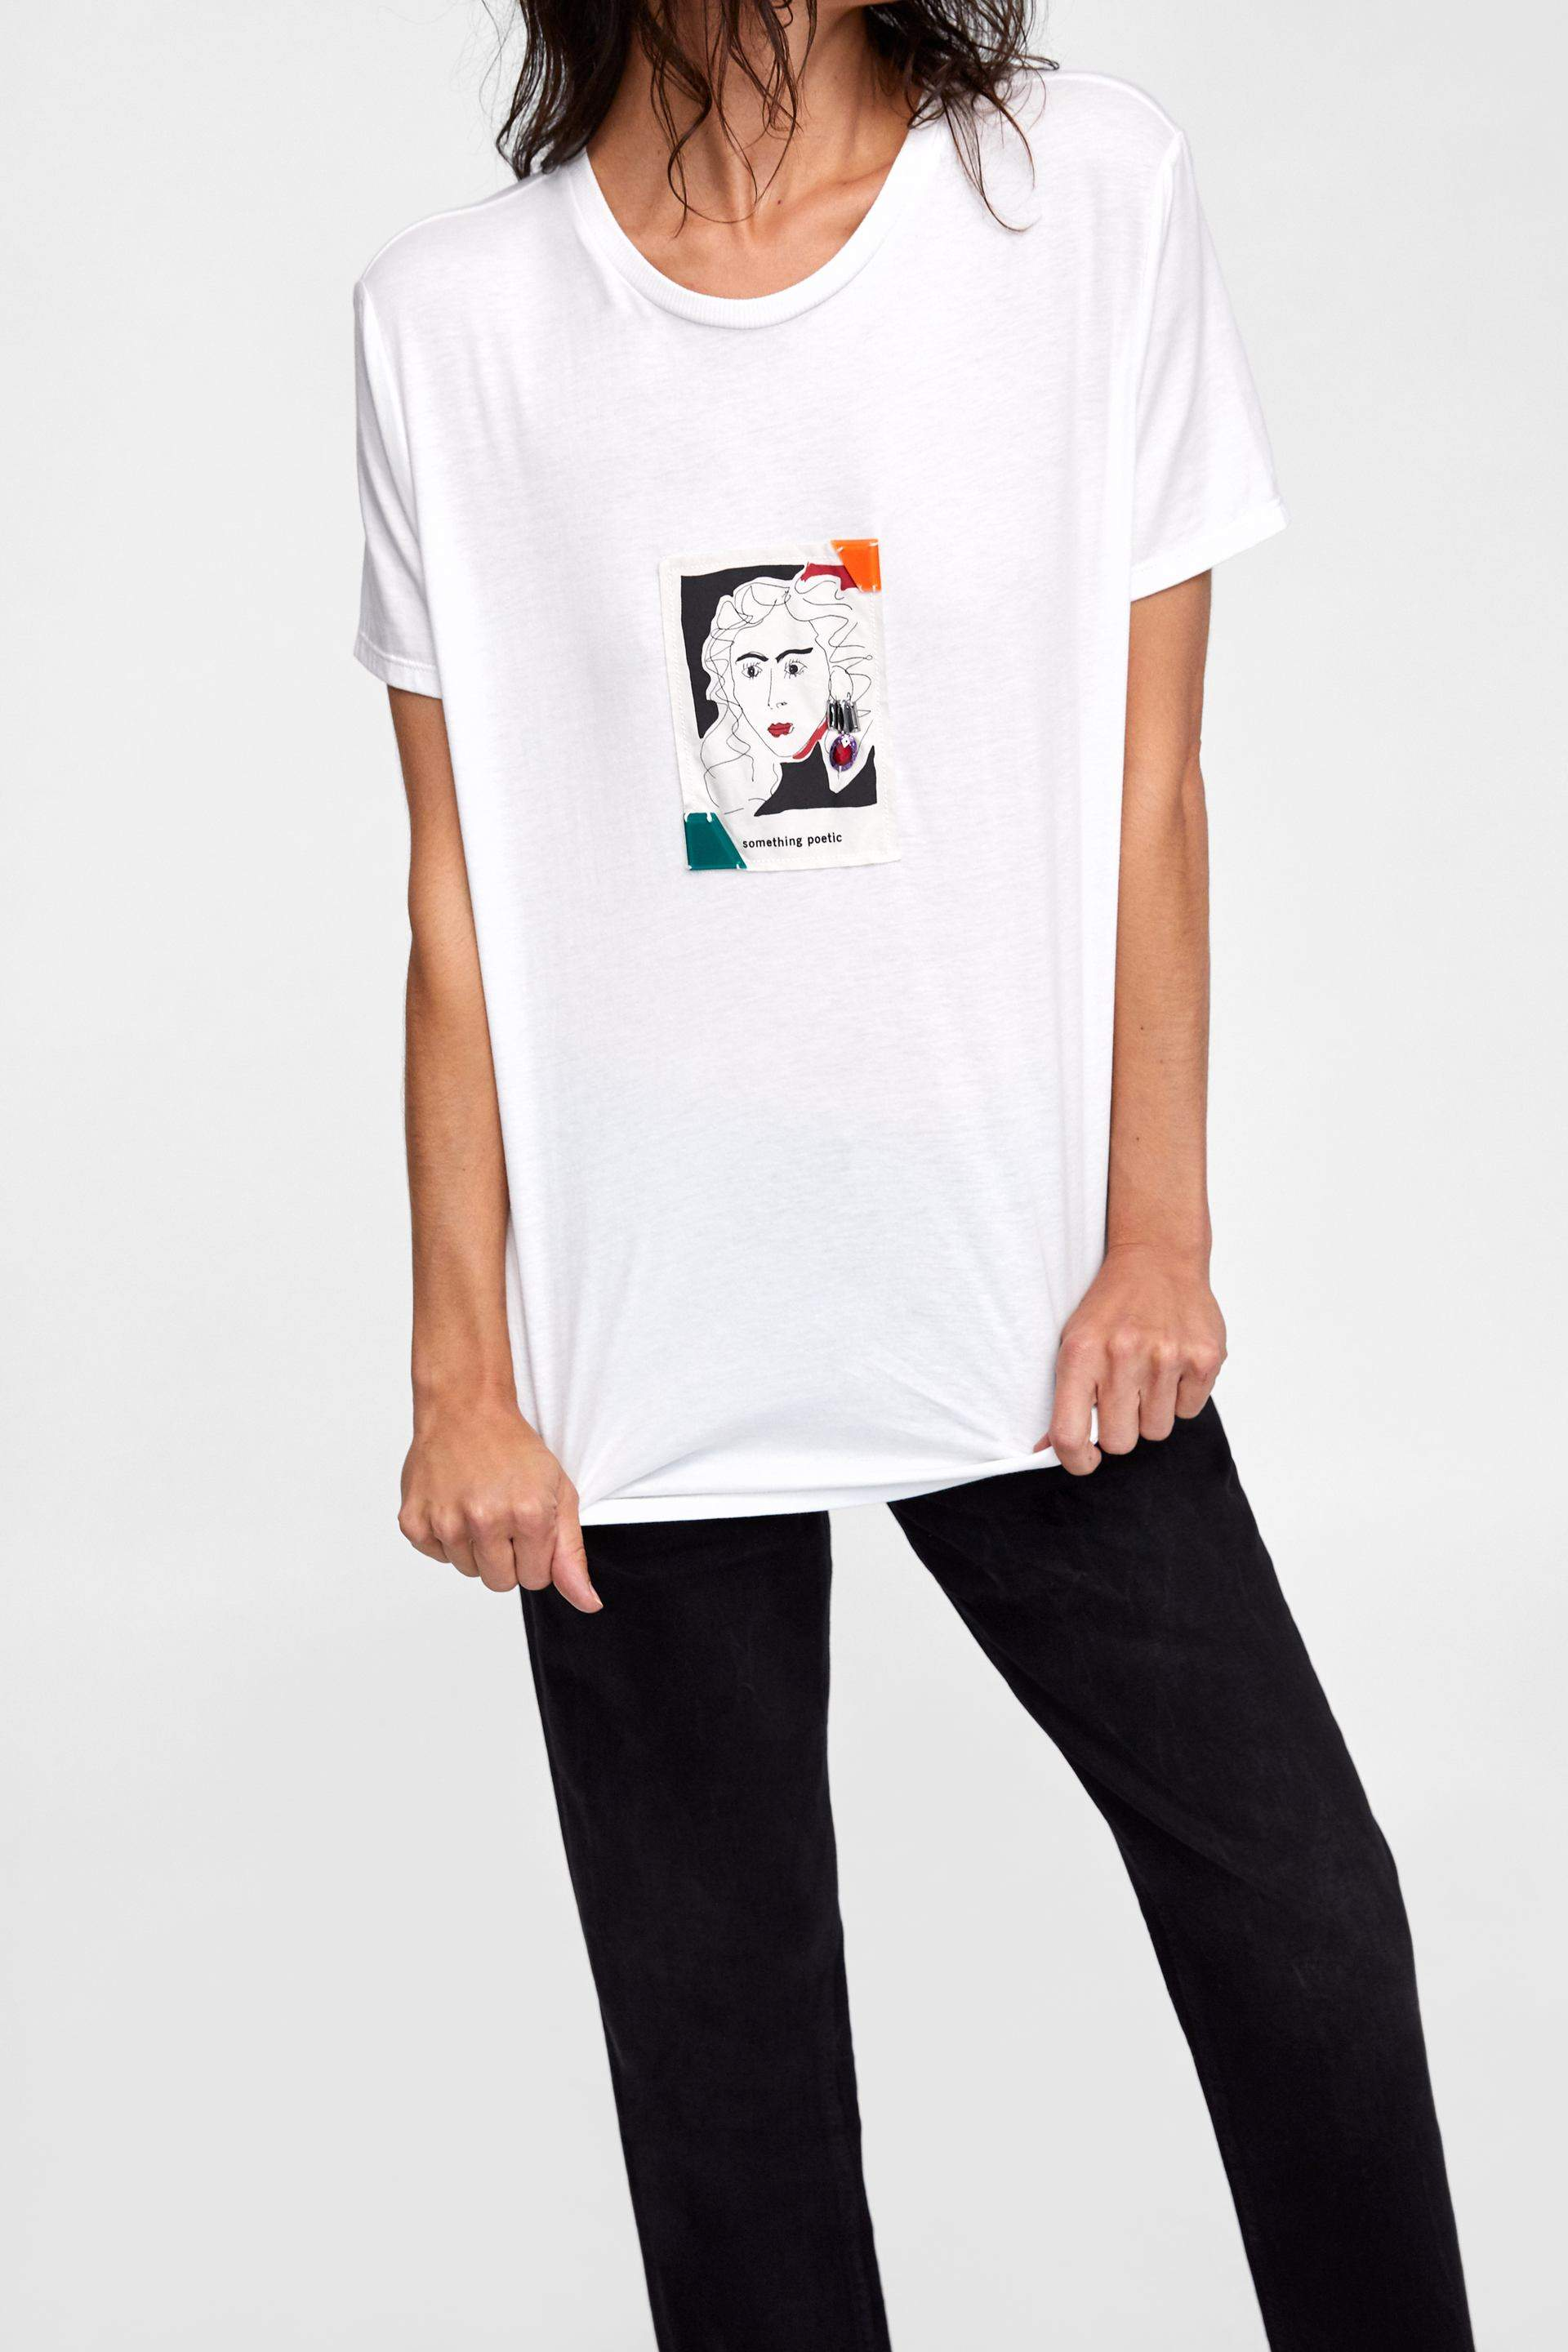 t-shirt trends 2018, trends, fashion, zara